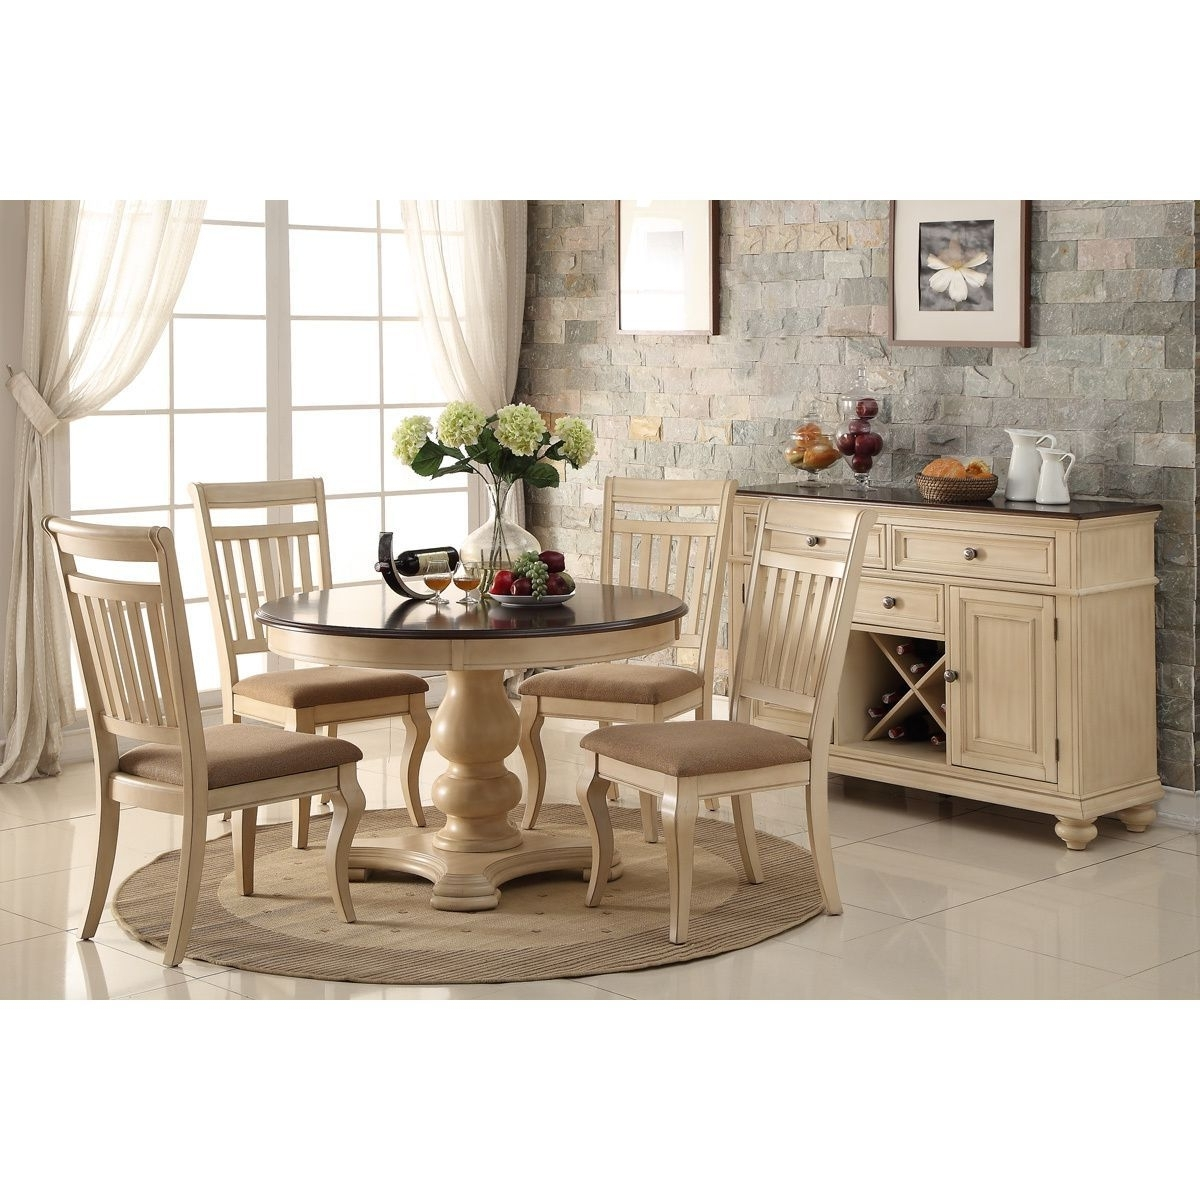 Craftsman 9 Piece Extension Dining Sets With Uph Side Chairs Regarding Most Current Great Barrington Dining Set (6 Piece), Ivory (View 8 of 25)